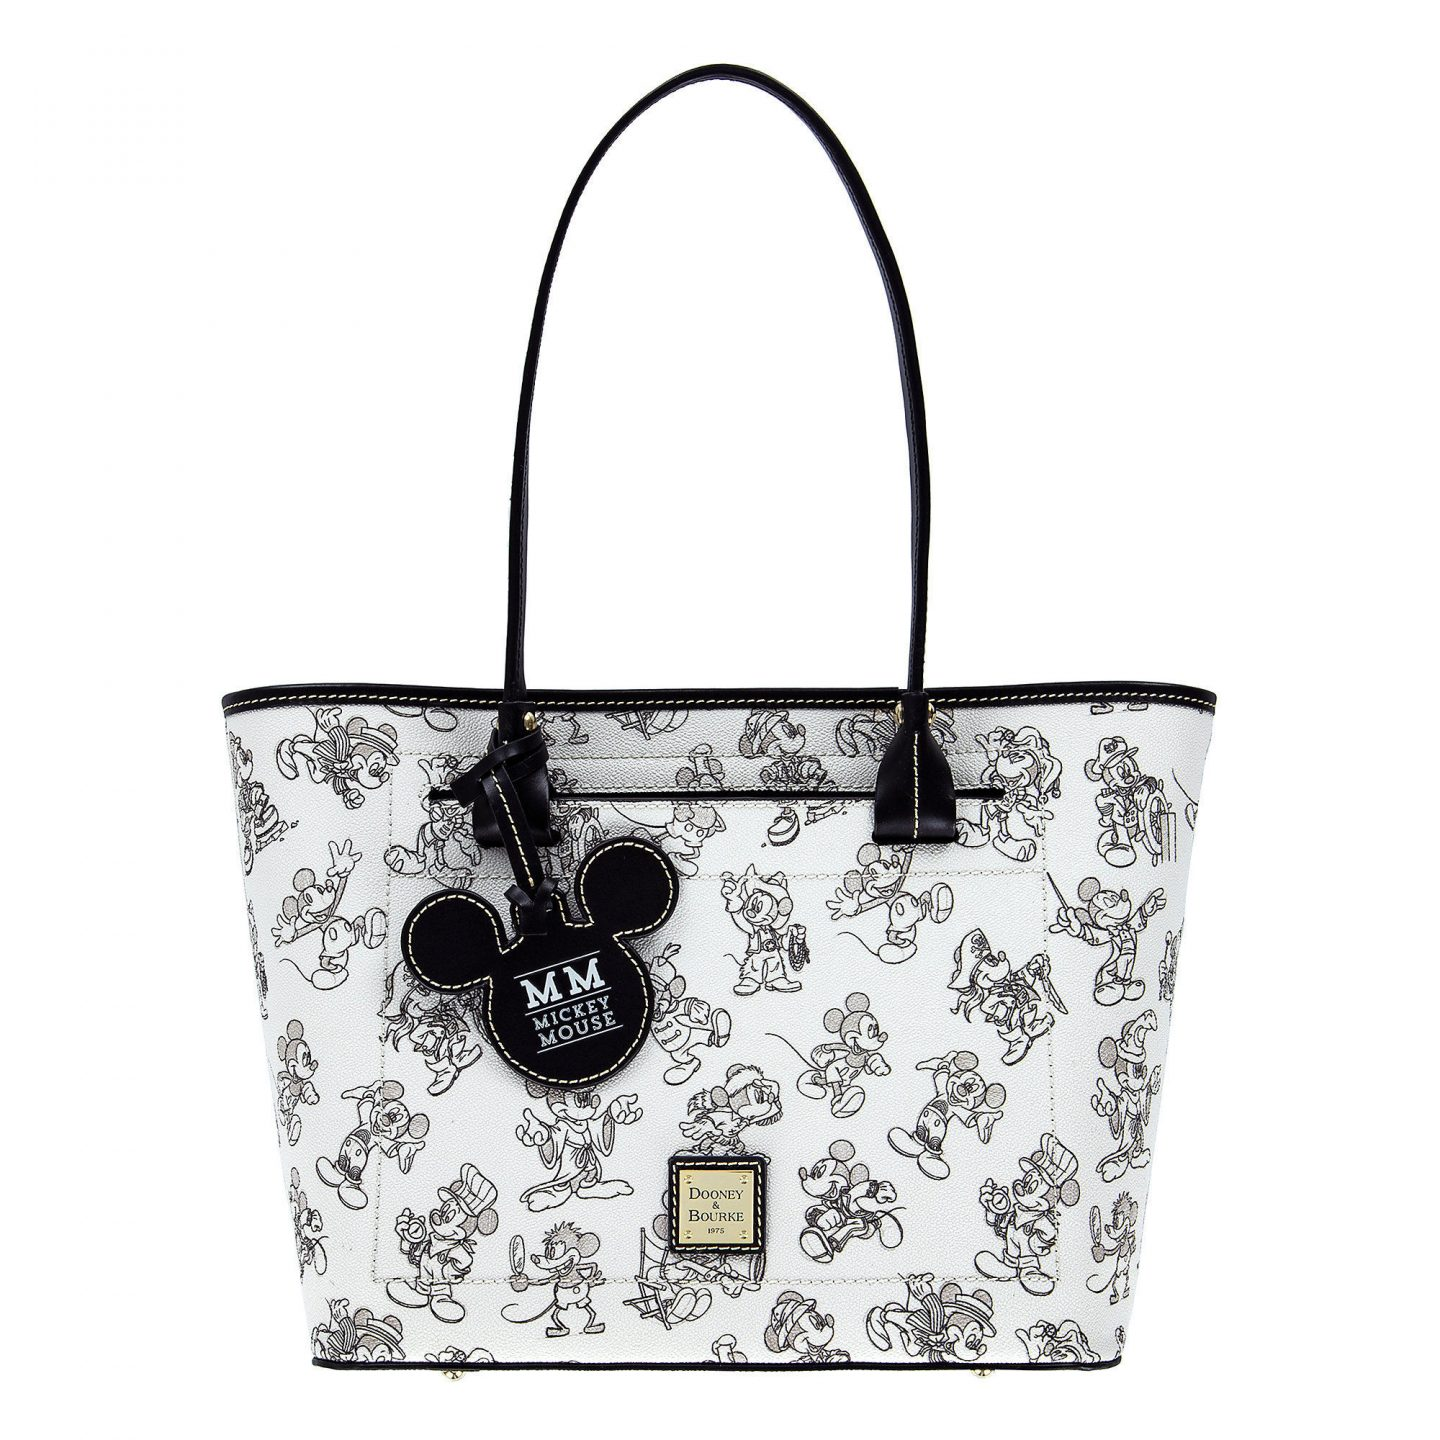 disney dooney and bourke mickey through the years bag for mickeys birthday